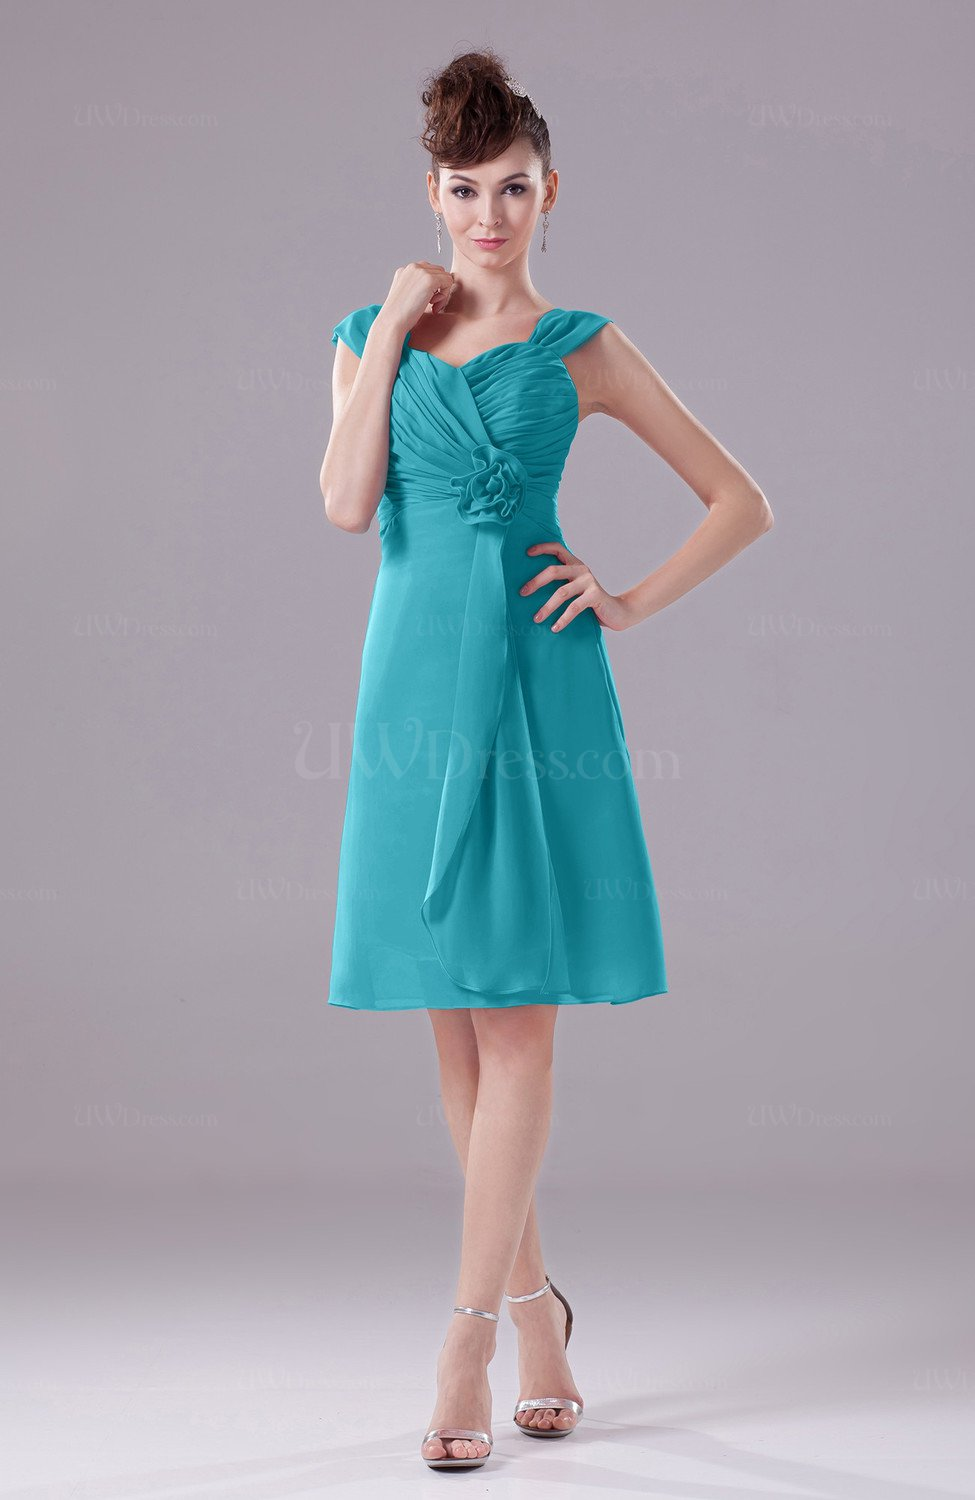 Teal Elegant A Line Thick Straps Chiffon Knee Length Party